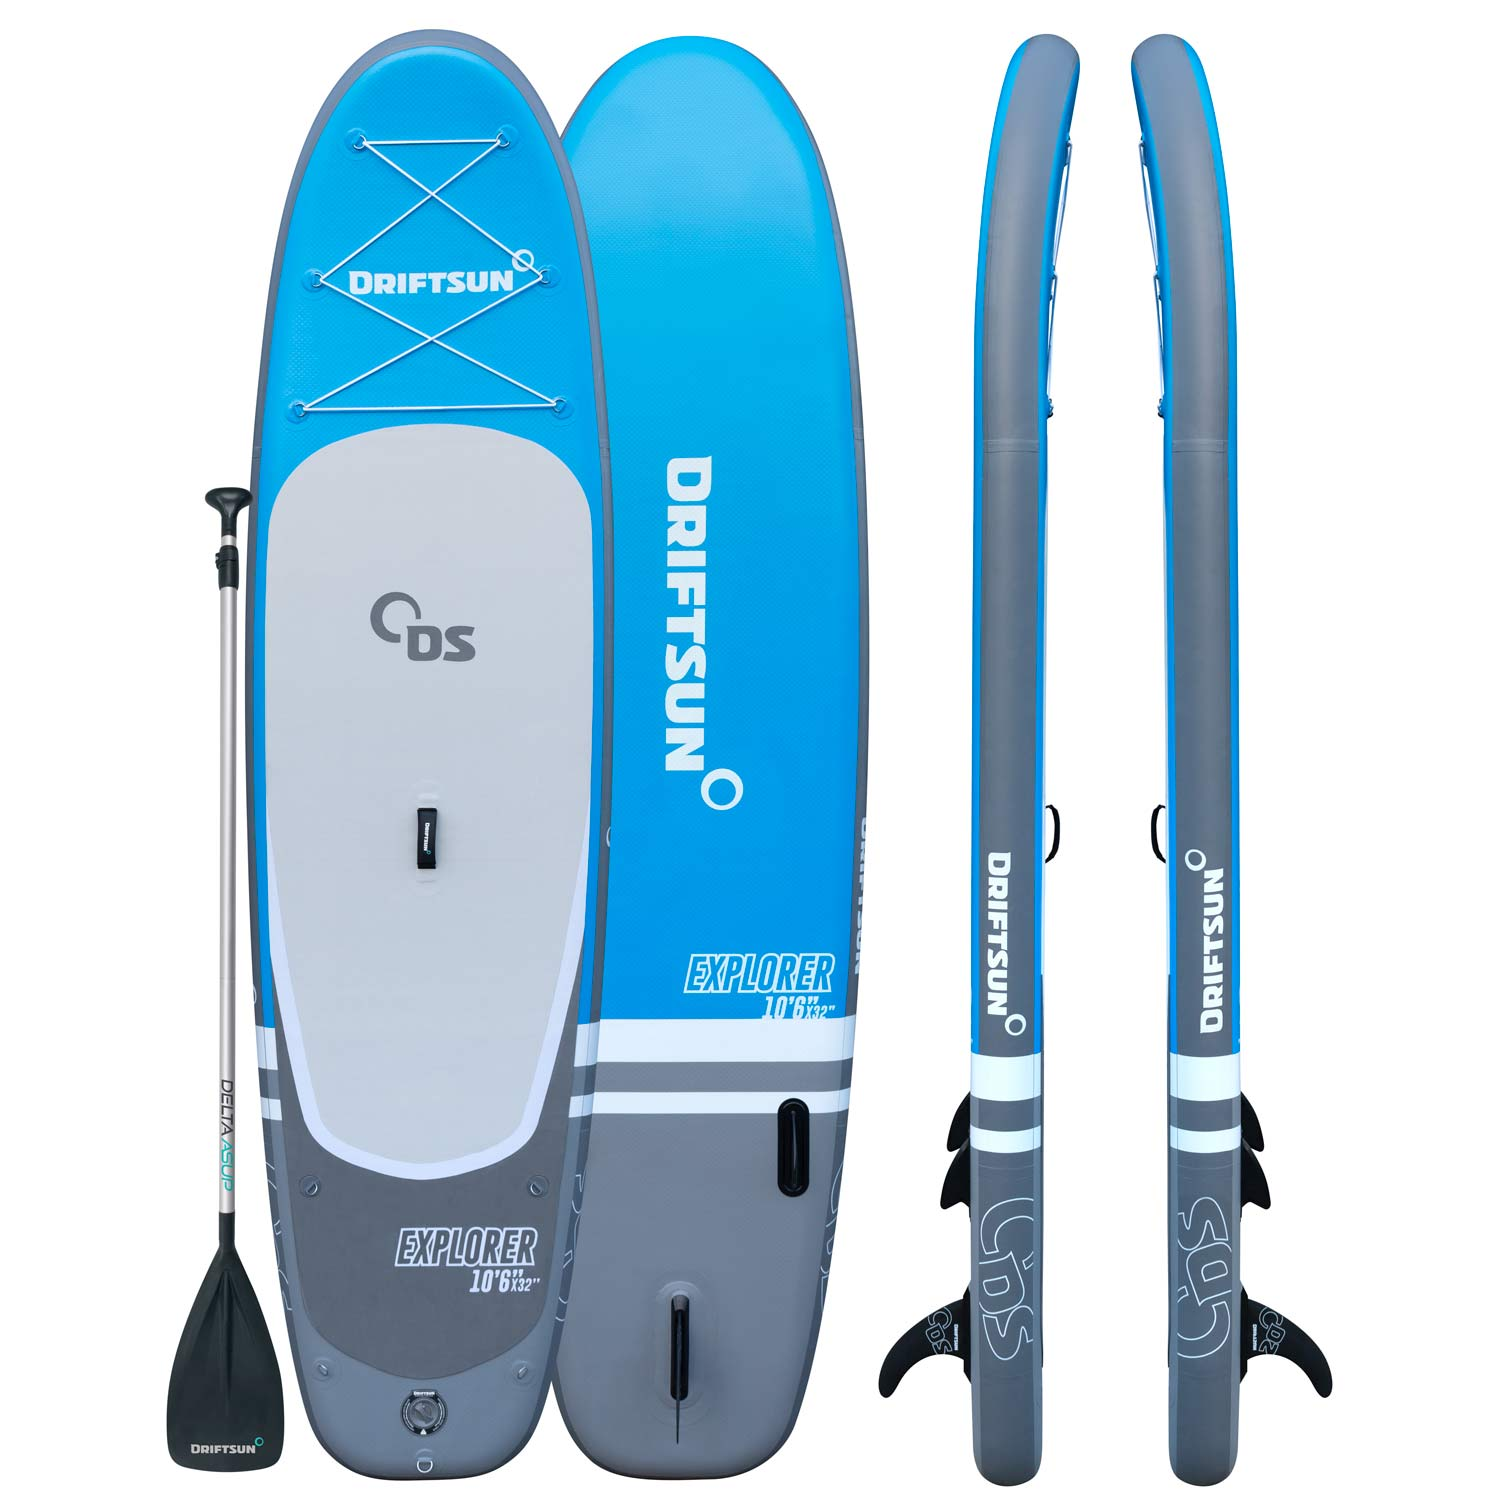 """Driftsun Explorer Ultimate Inflatable Paddleboard Package with Travel Backpack, Adjustable Paddle, Coil Leash - 10' Length 6"""""""